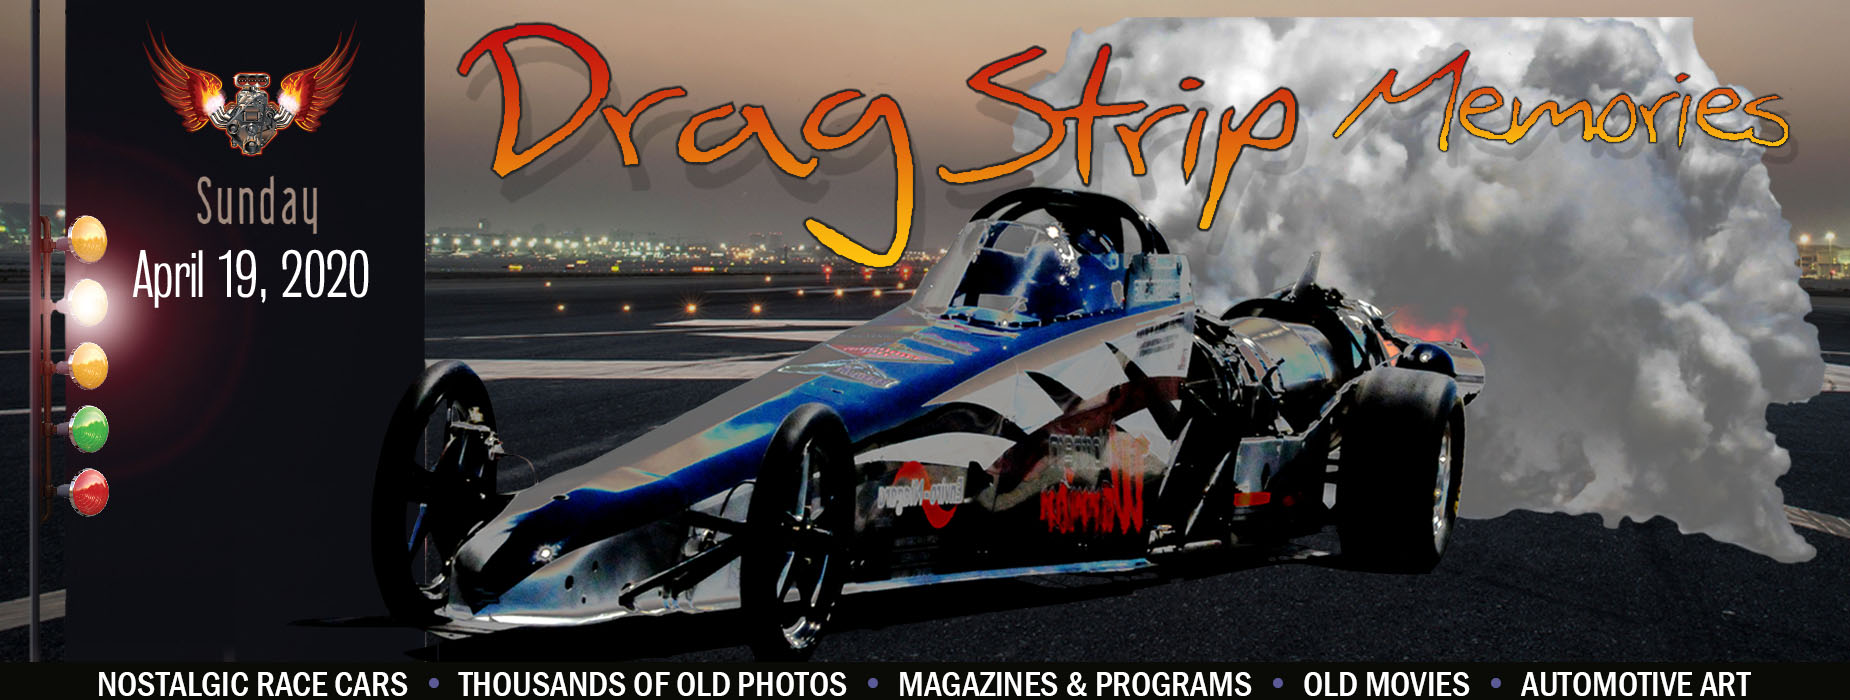 Banner Image for the Dragstrip Memories event